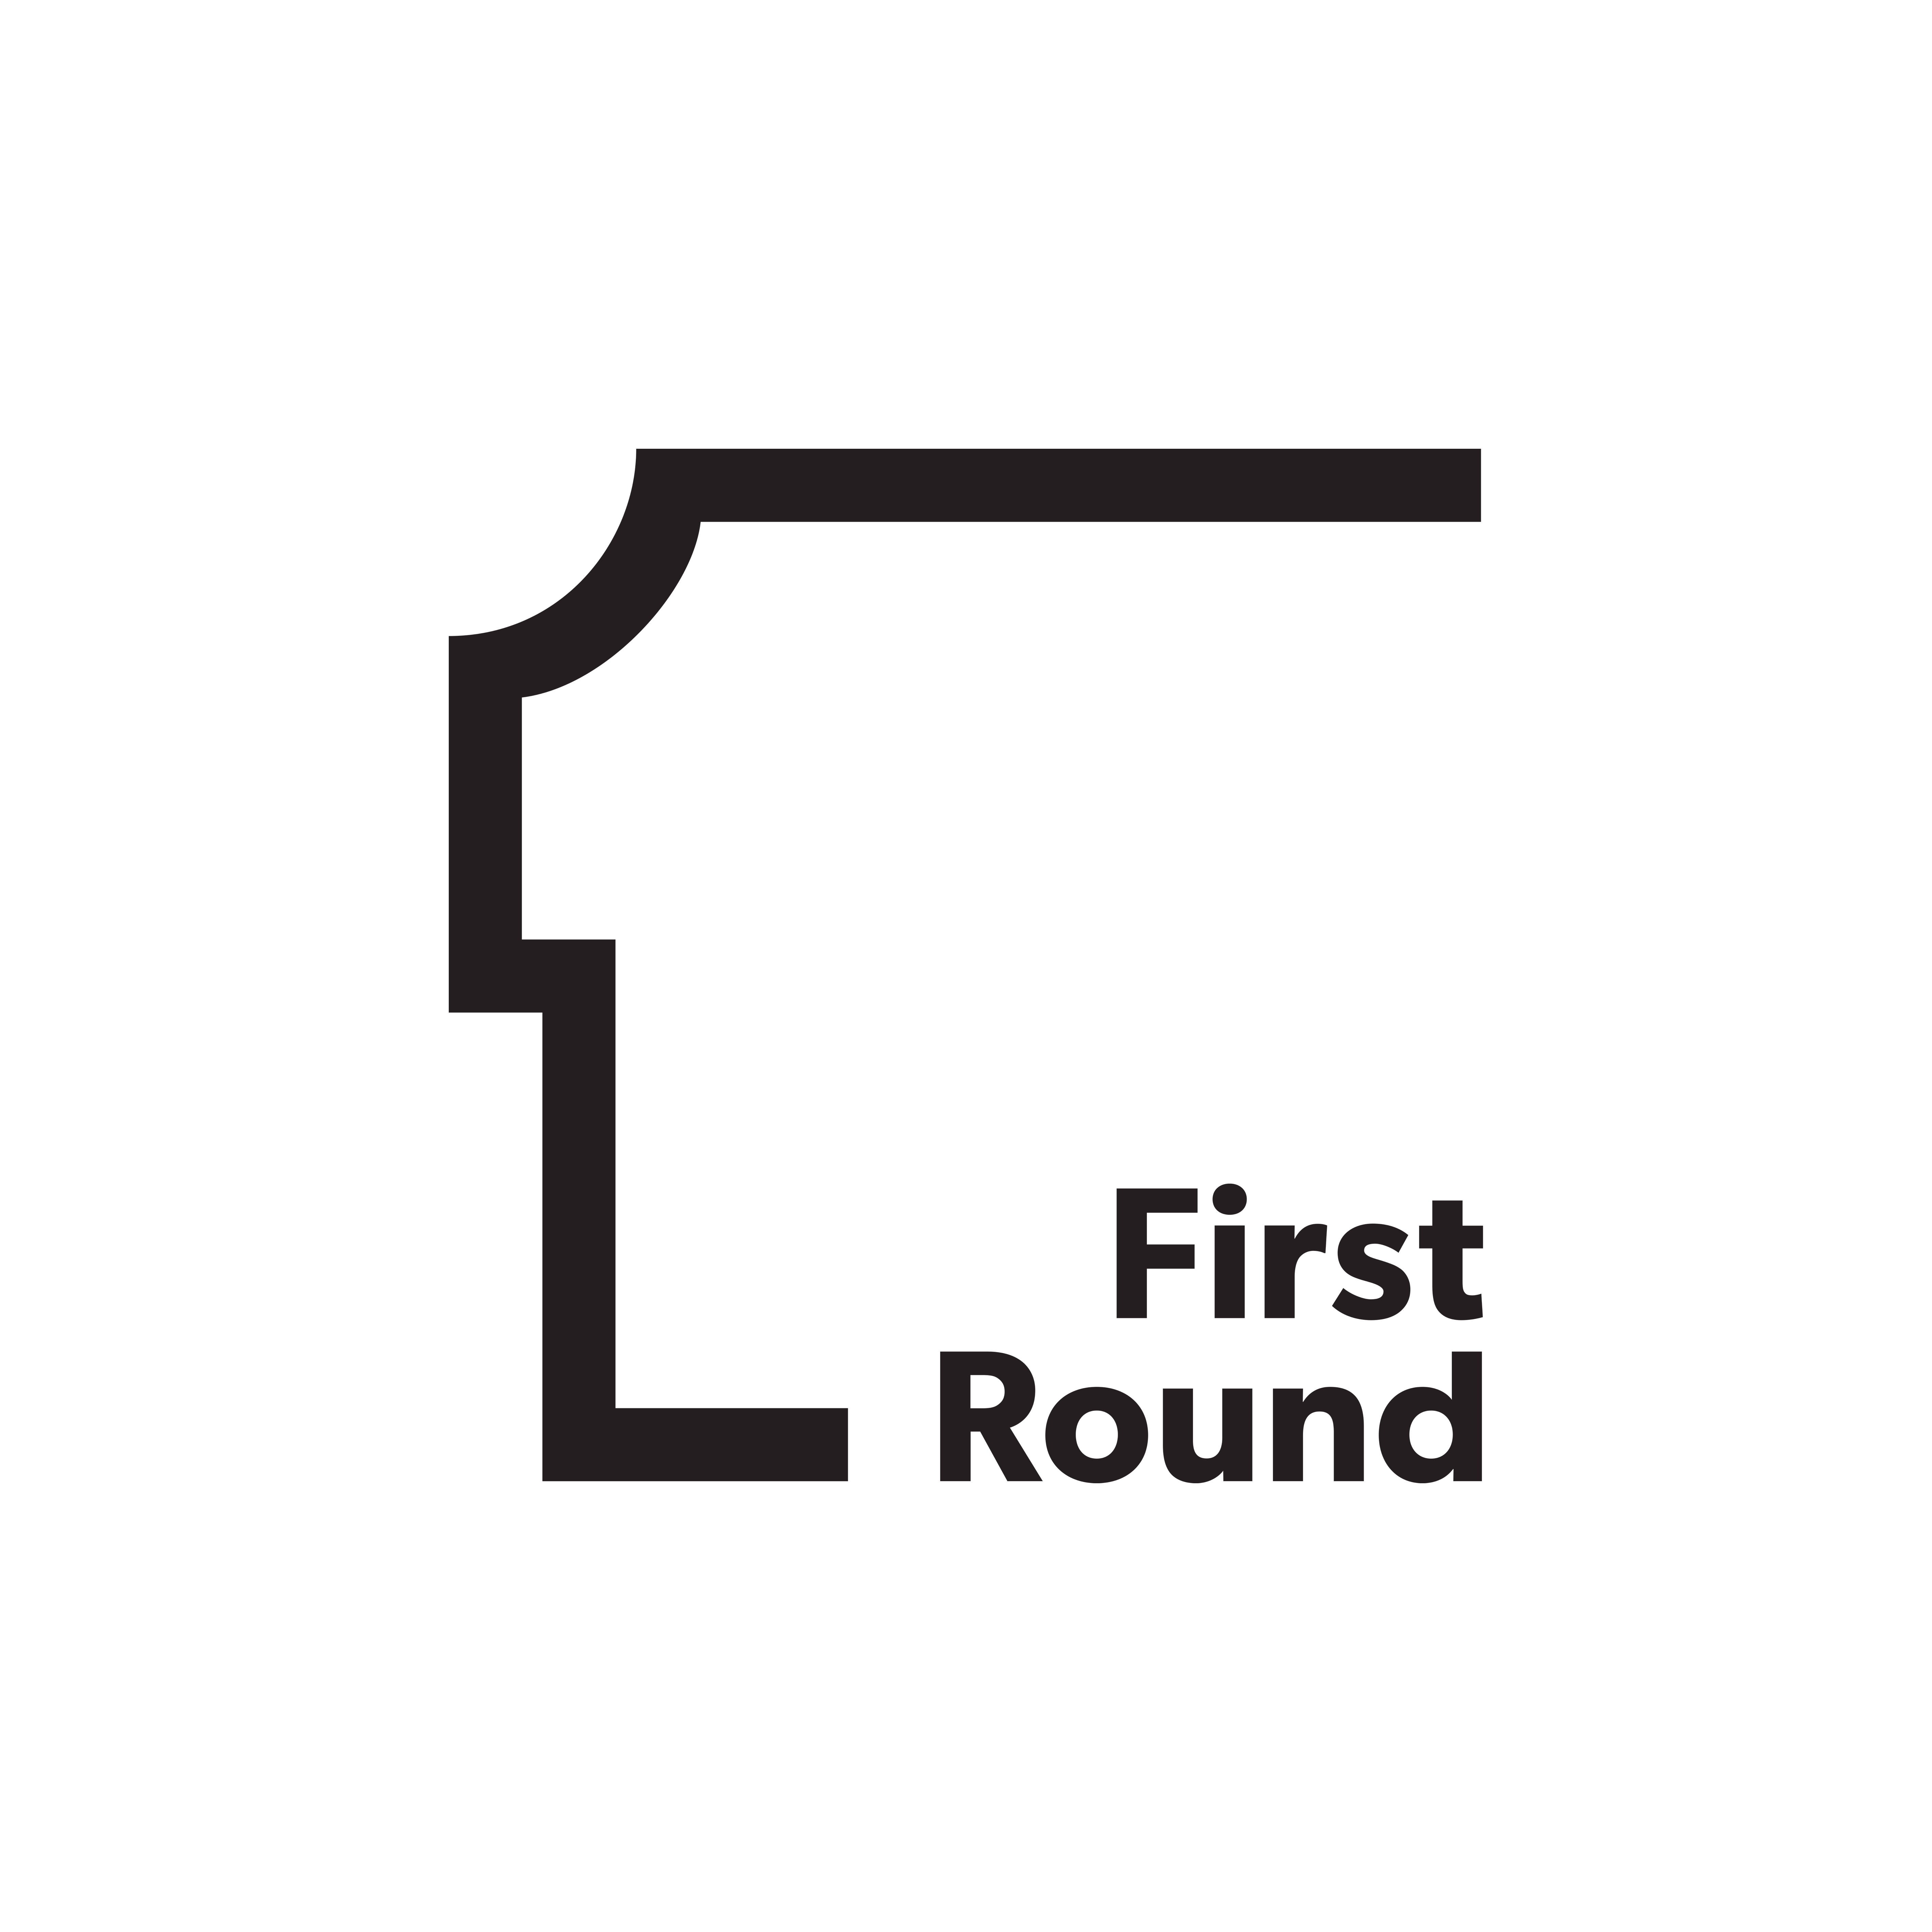 Top Reads from First Round on Brainstorming Startup Ideas